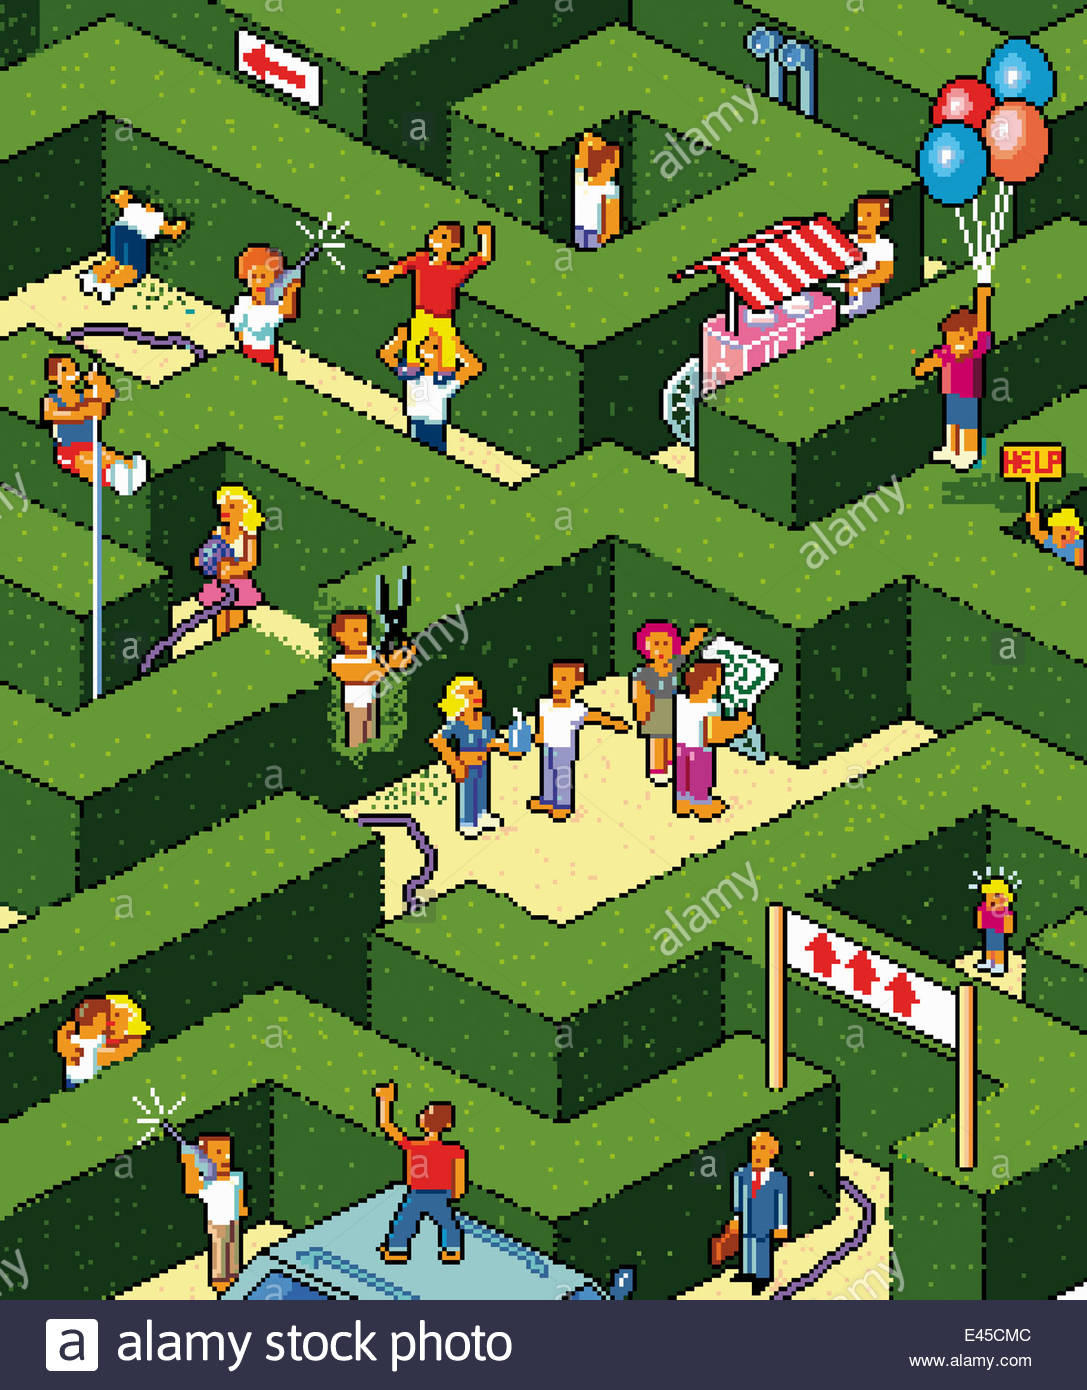 Lots of people lost in maze looking for way out - Stock Image